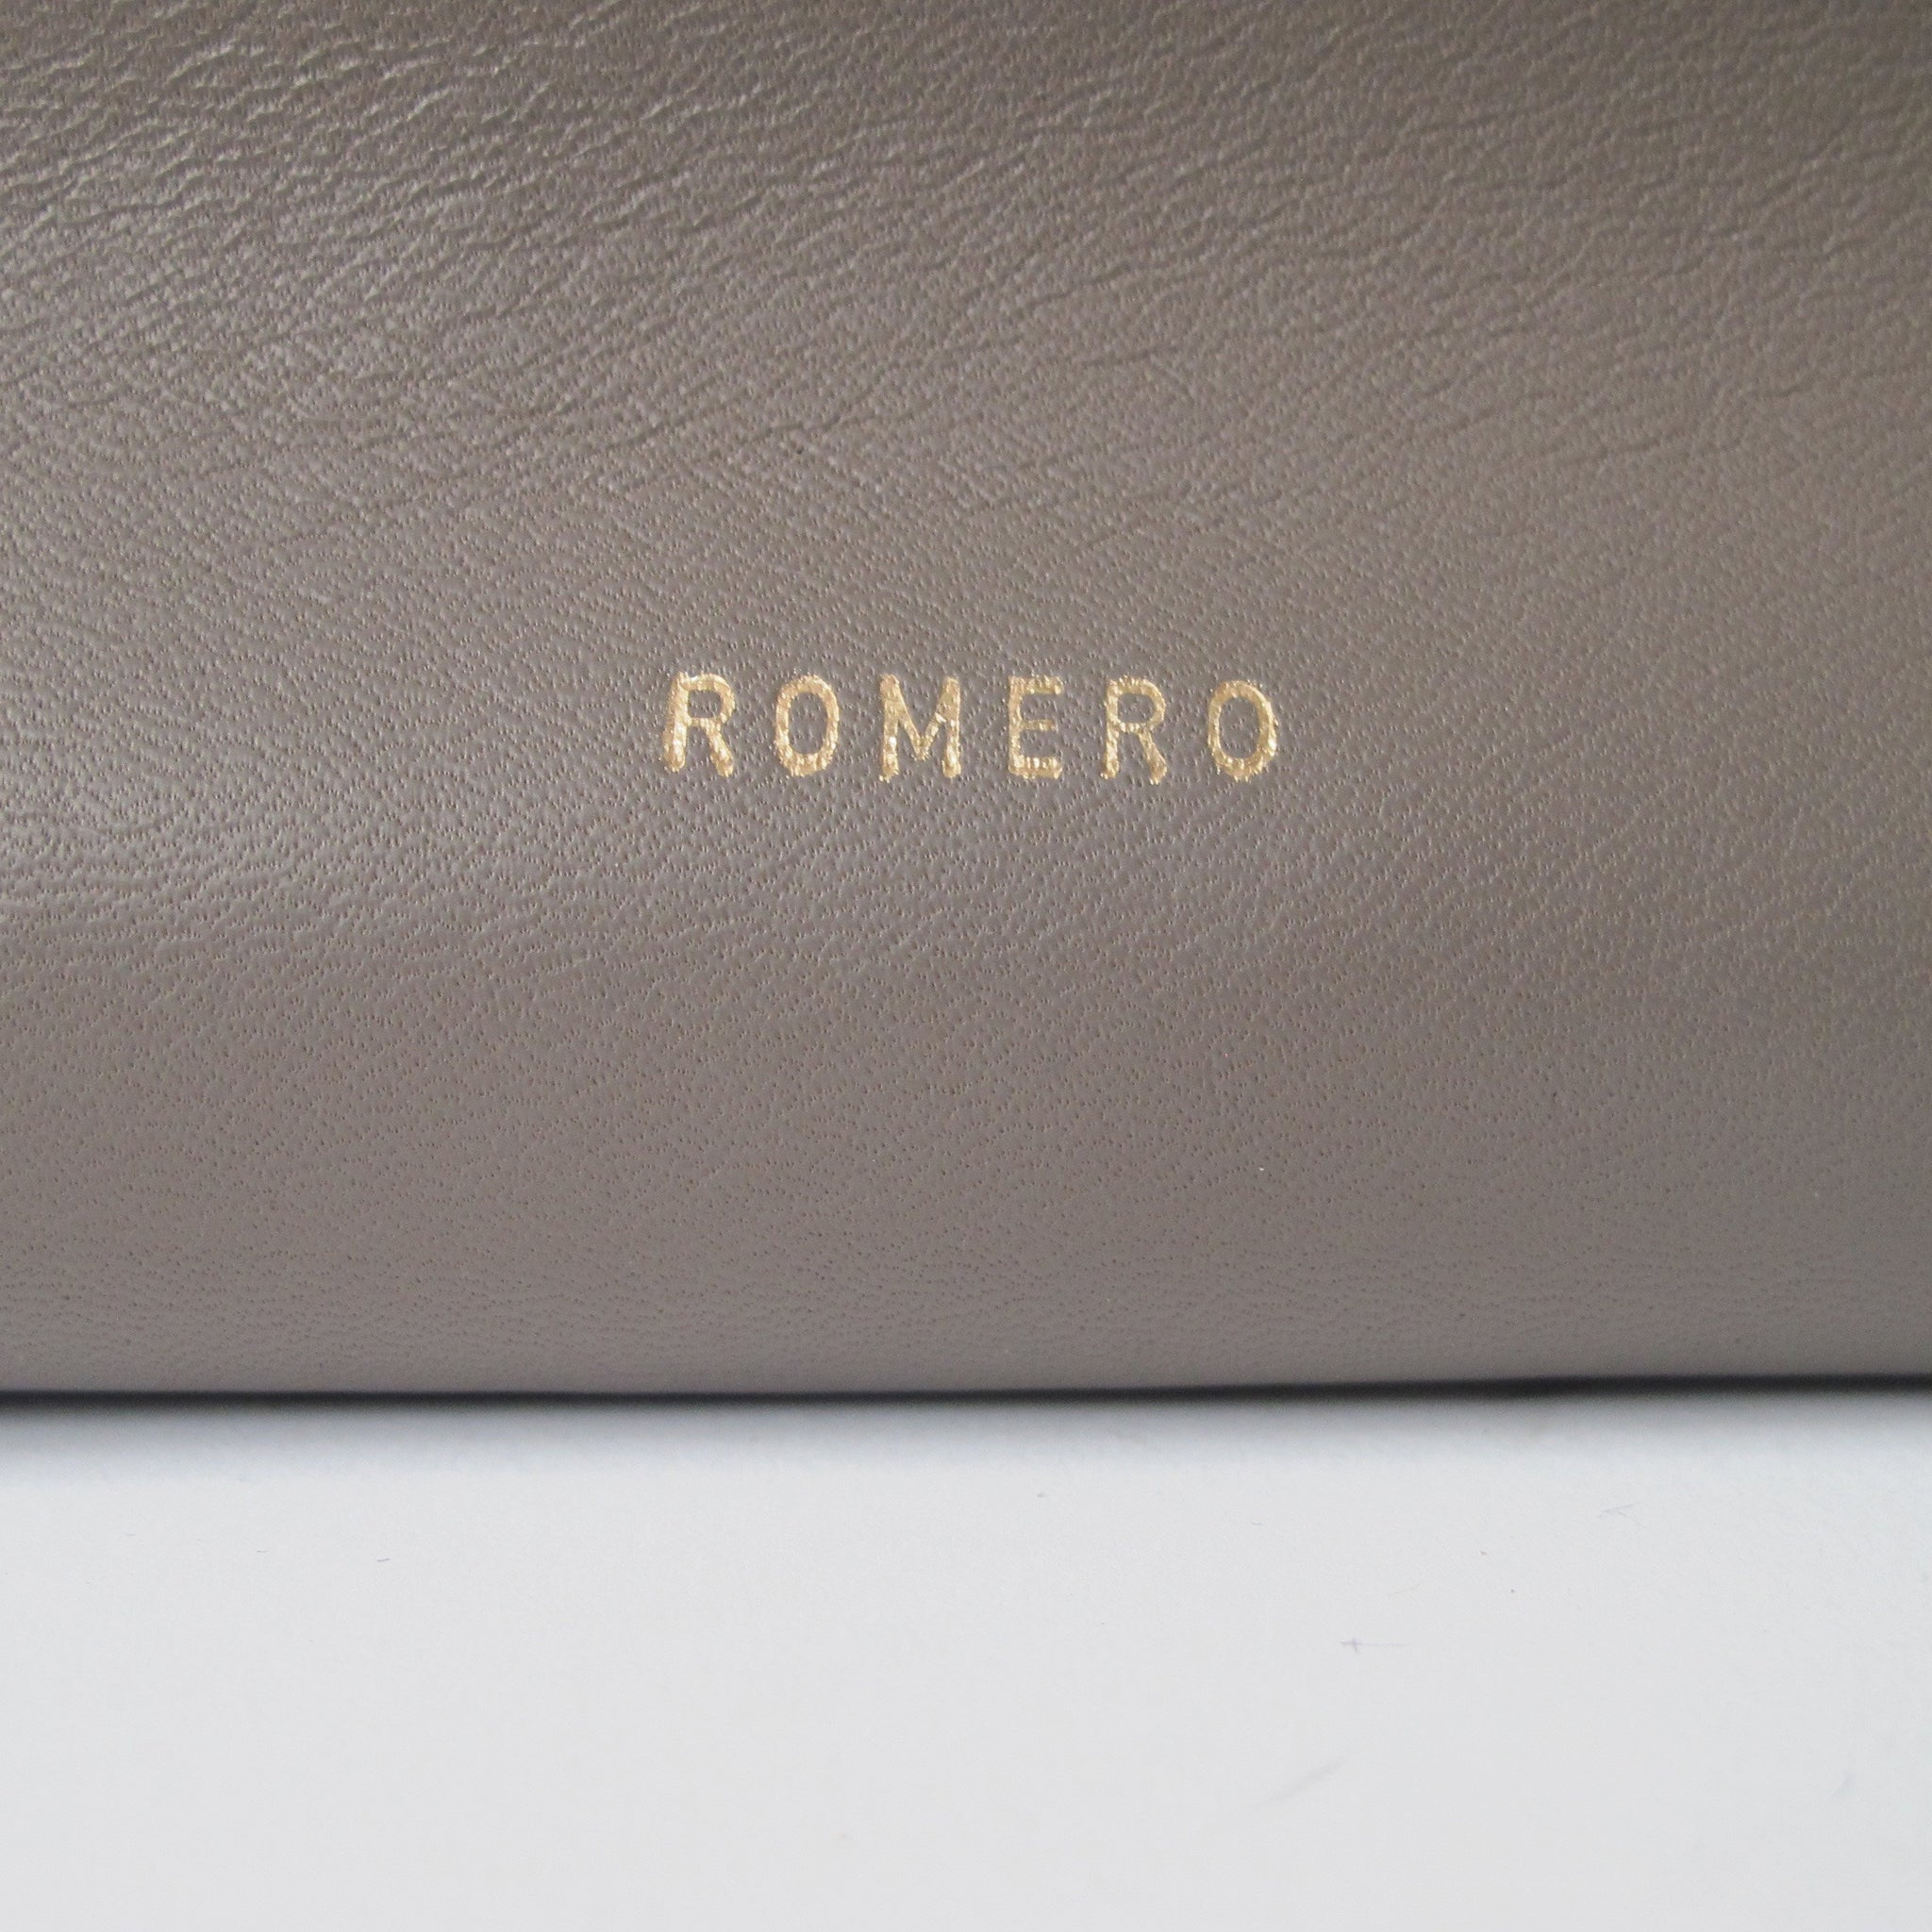 Romero Laptop Case - Lesetta